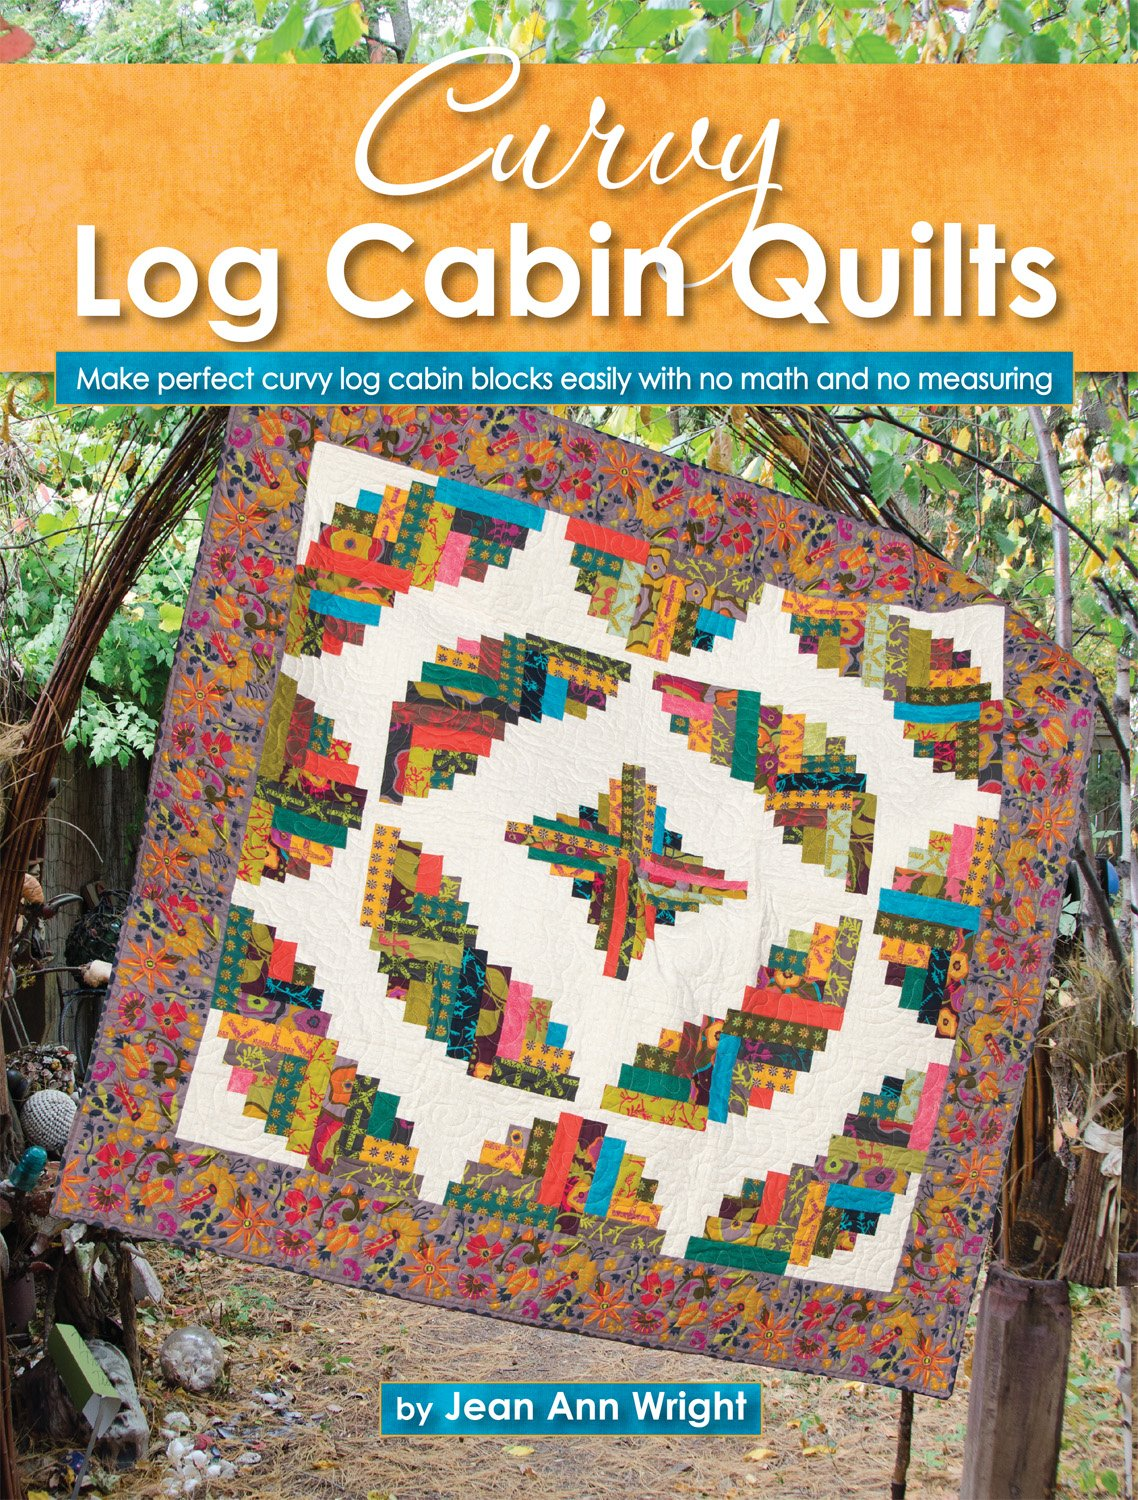 Curvy Log Cabin Quilts Make Perfect Curvy Log Cabin Blocks Easily With No Math And No Measuring Landauer 8 Unique Projects With Step By Step Photos Instructions Yardage And Cutting Charts Jean Ann